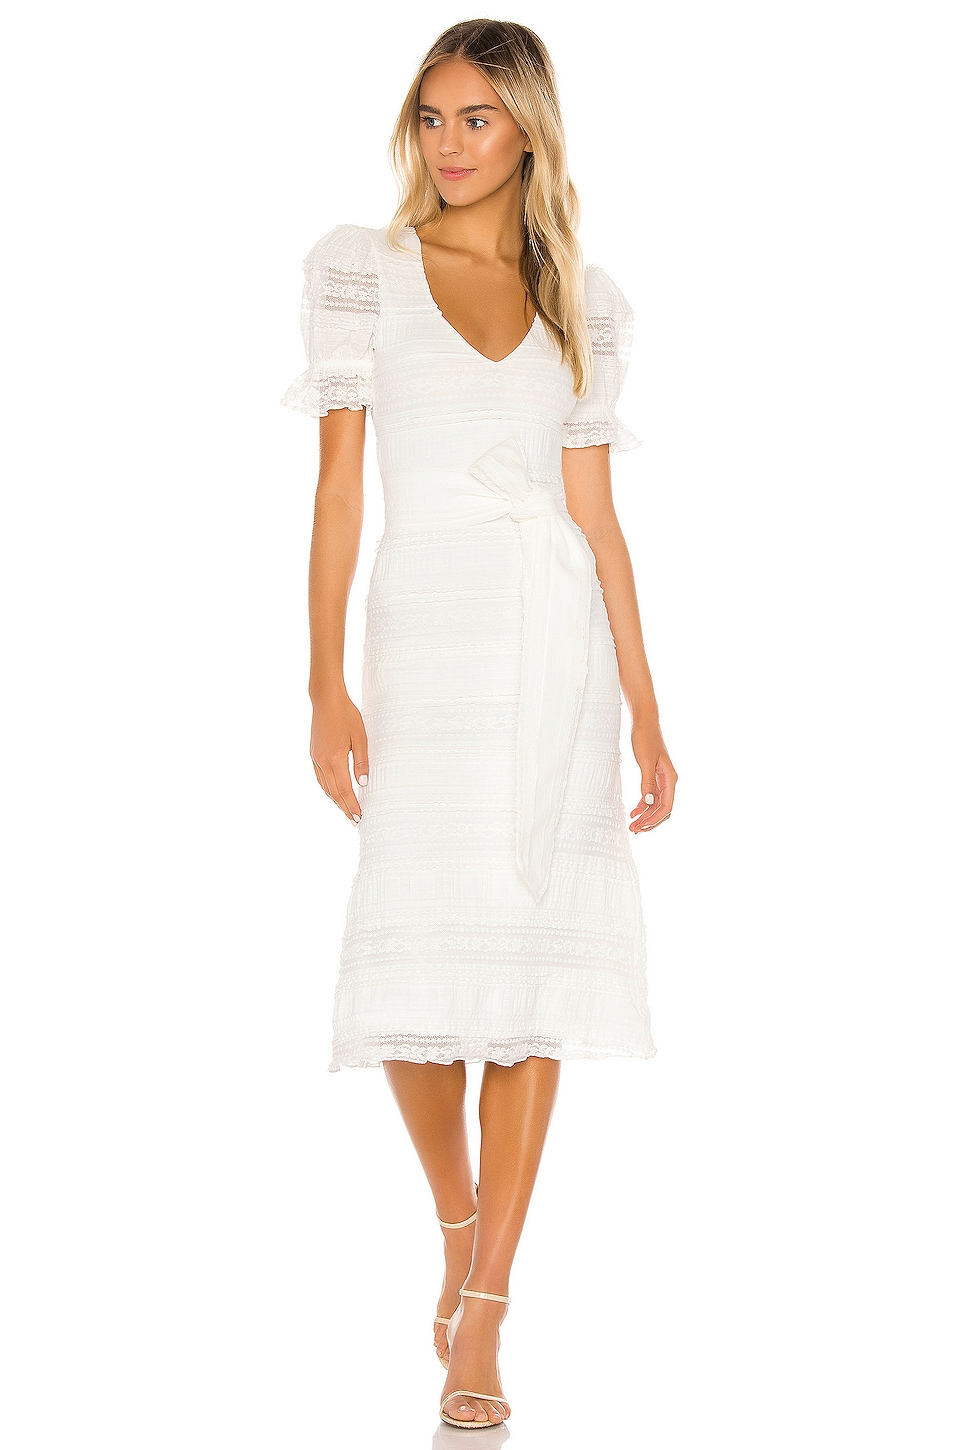 Quinn Midi Dress             Tularosa                                                                                                       CA$ 231.57 6